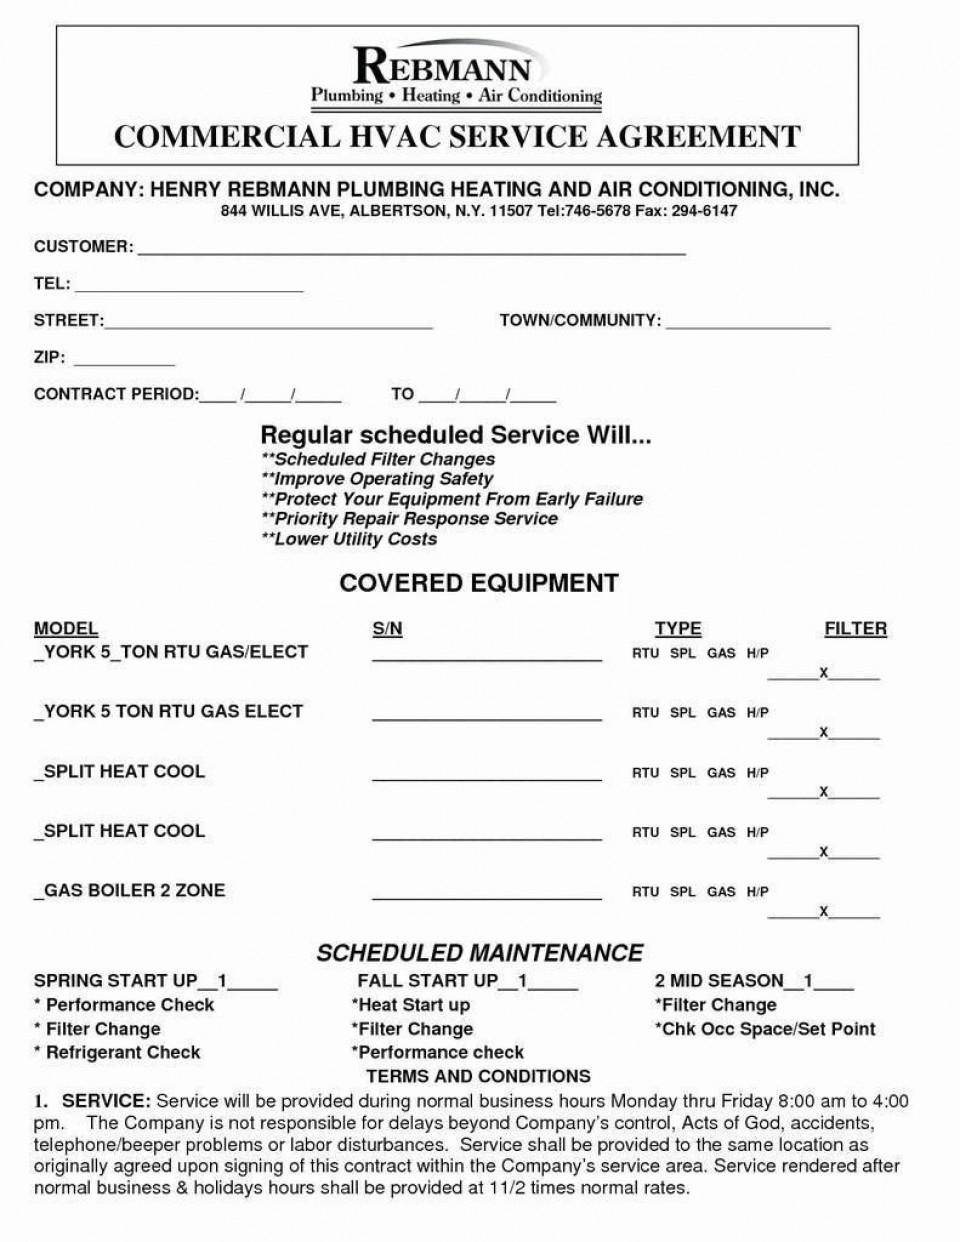 007 Dreaded Commercial Hvac Service Agreement Template Picture  Maintenance Contract960